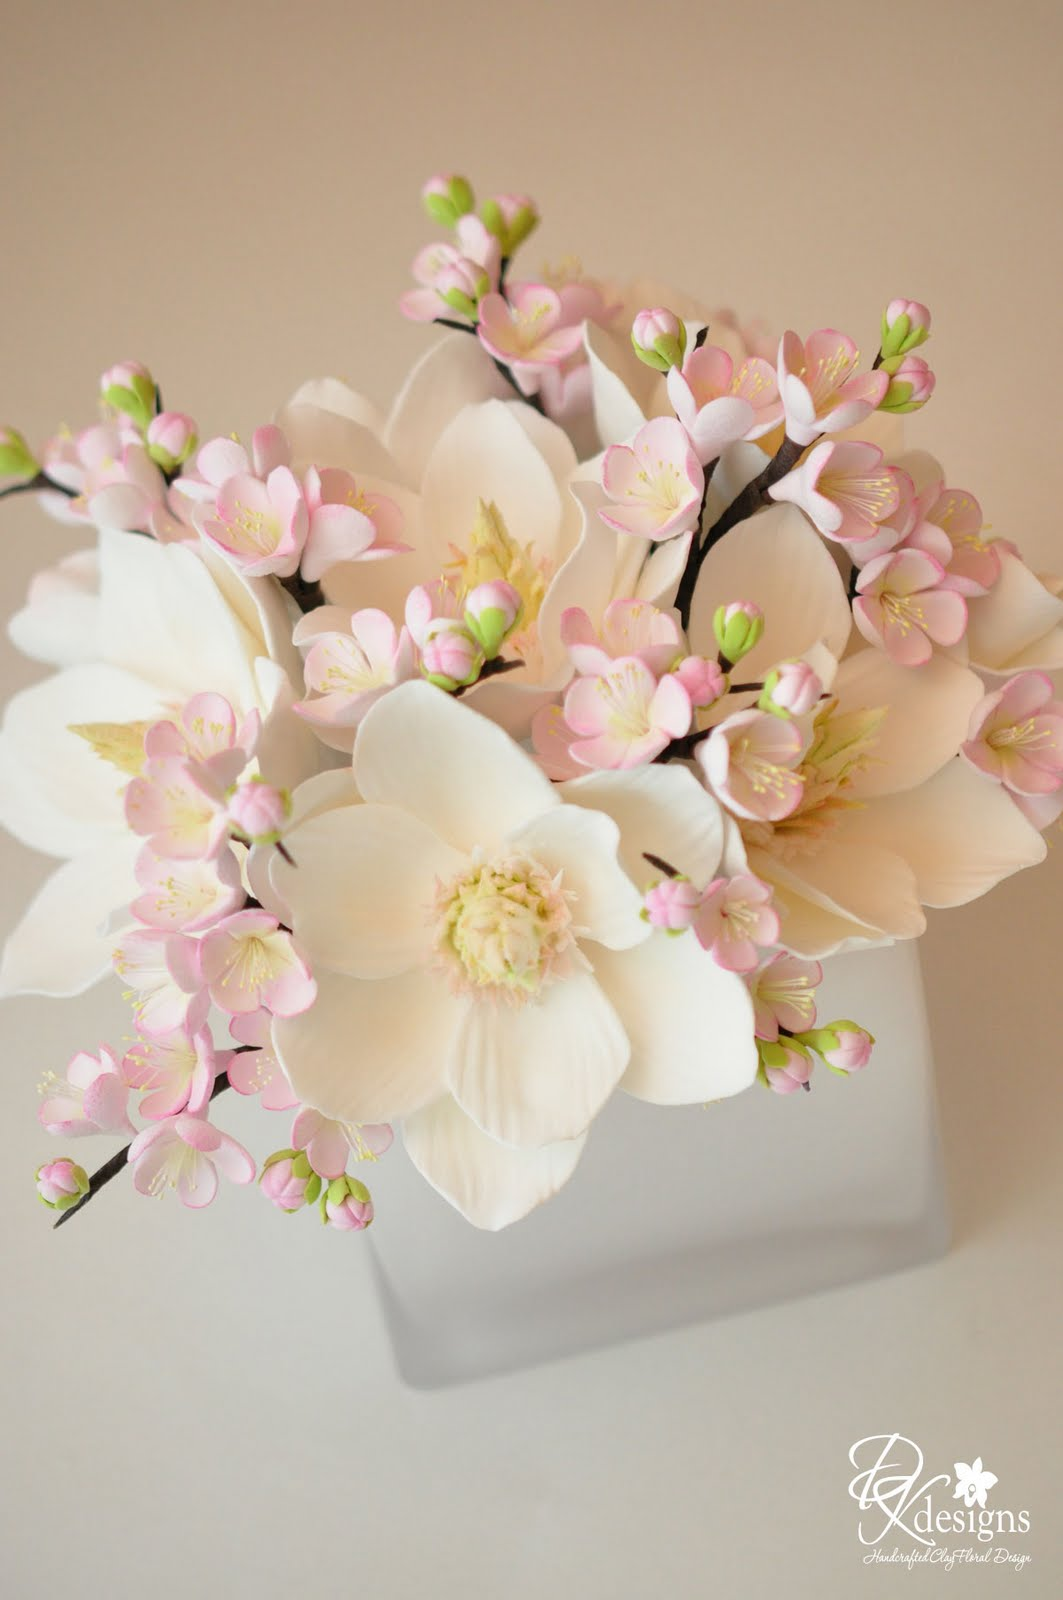 Custom Floral Arrangement = Magnolias and Plum Blossoms - DK Designs